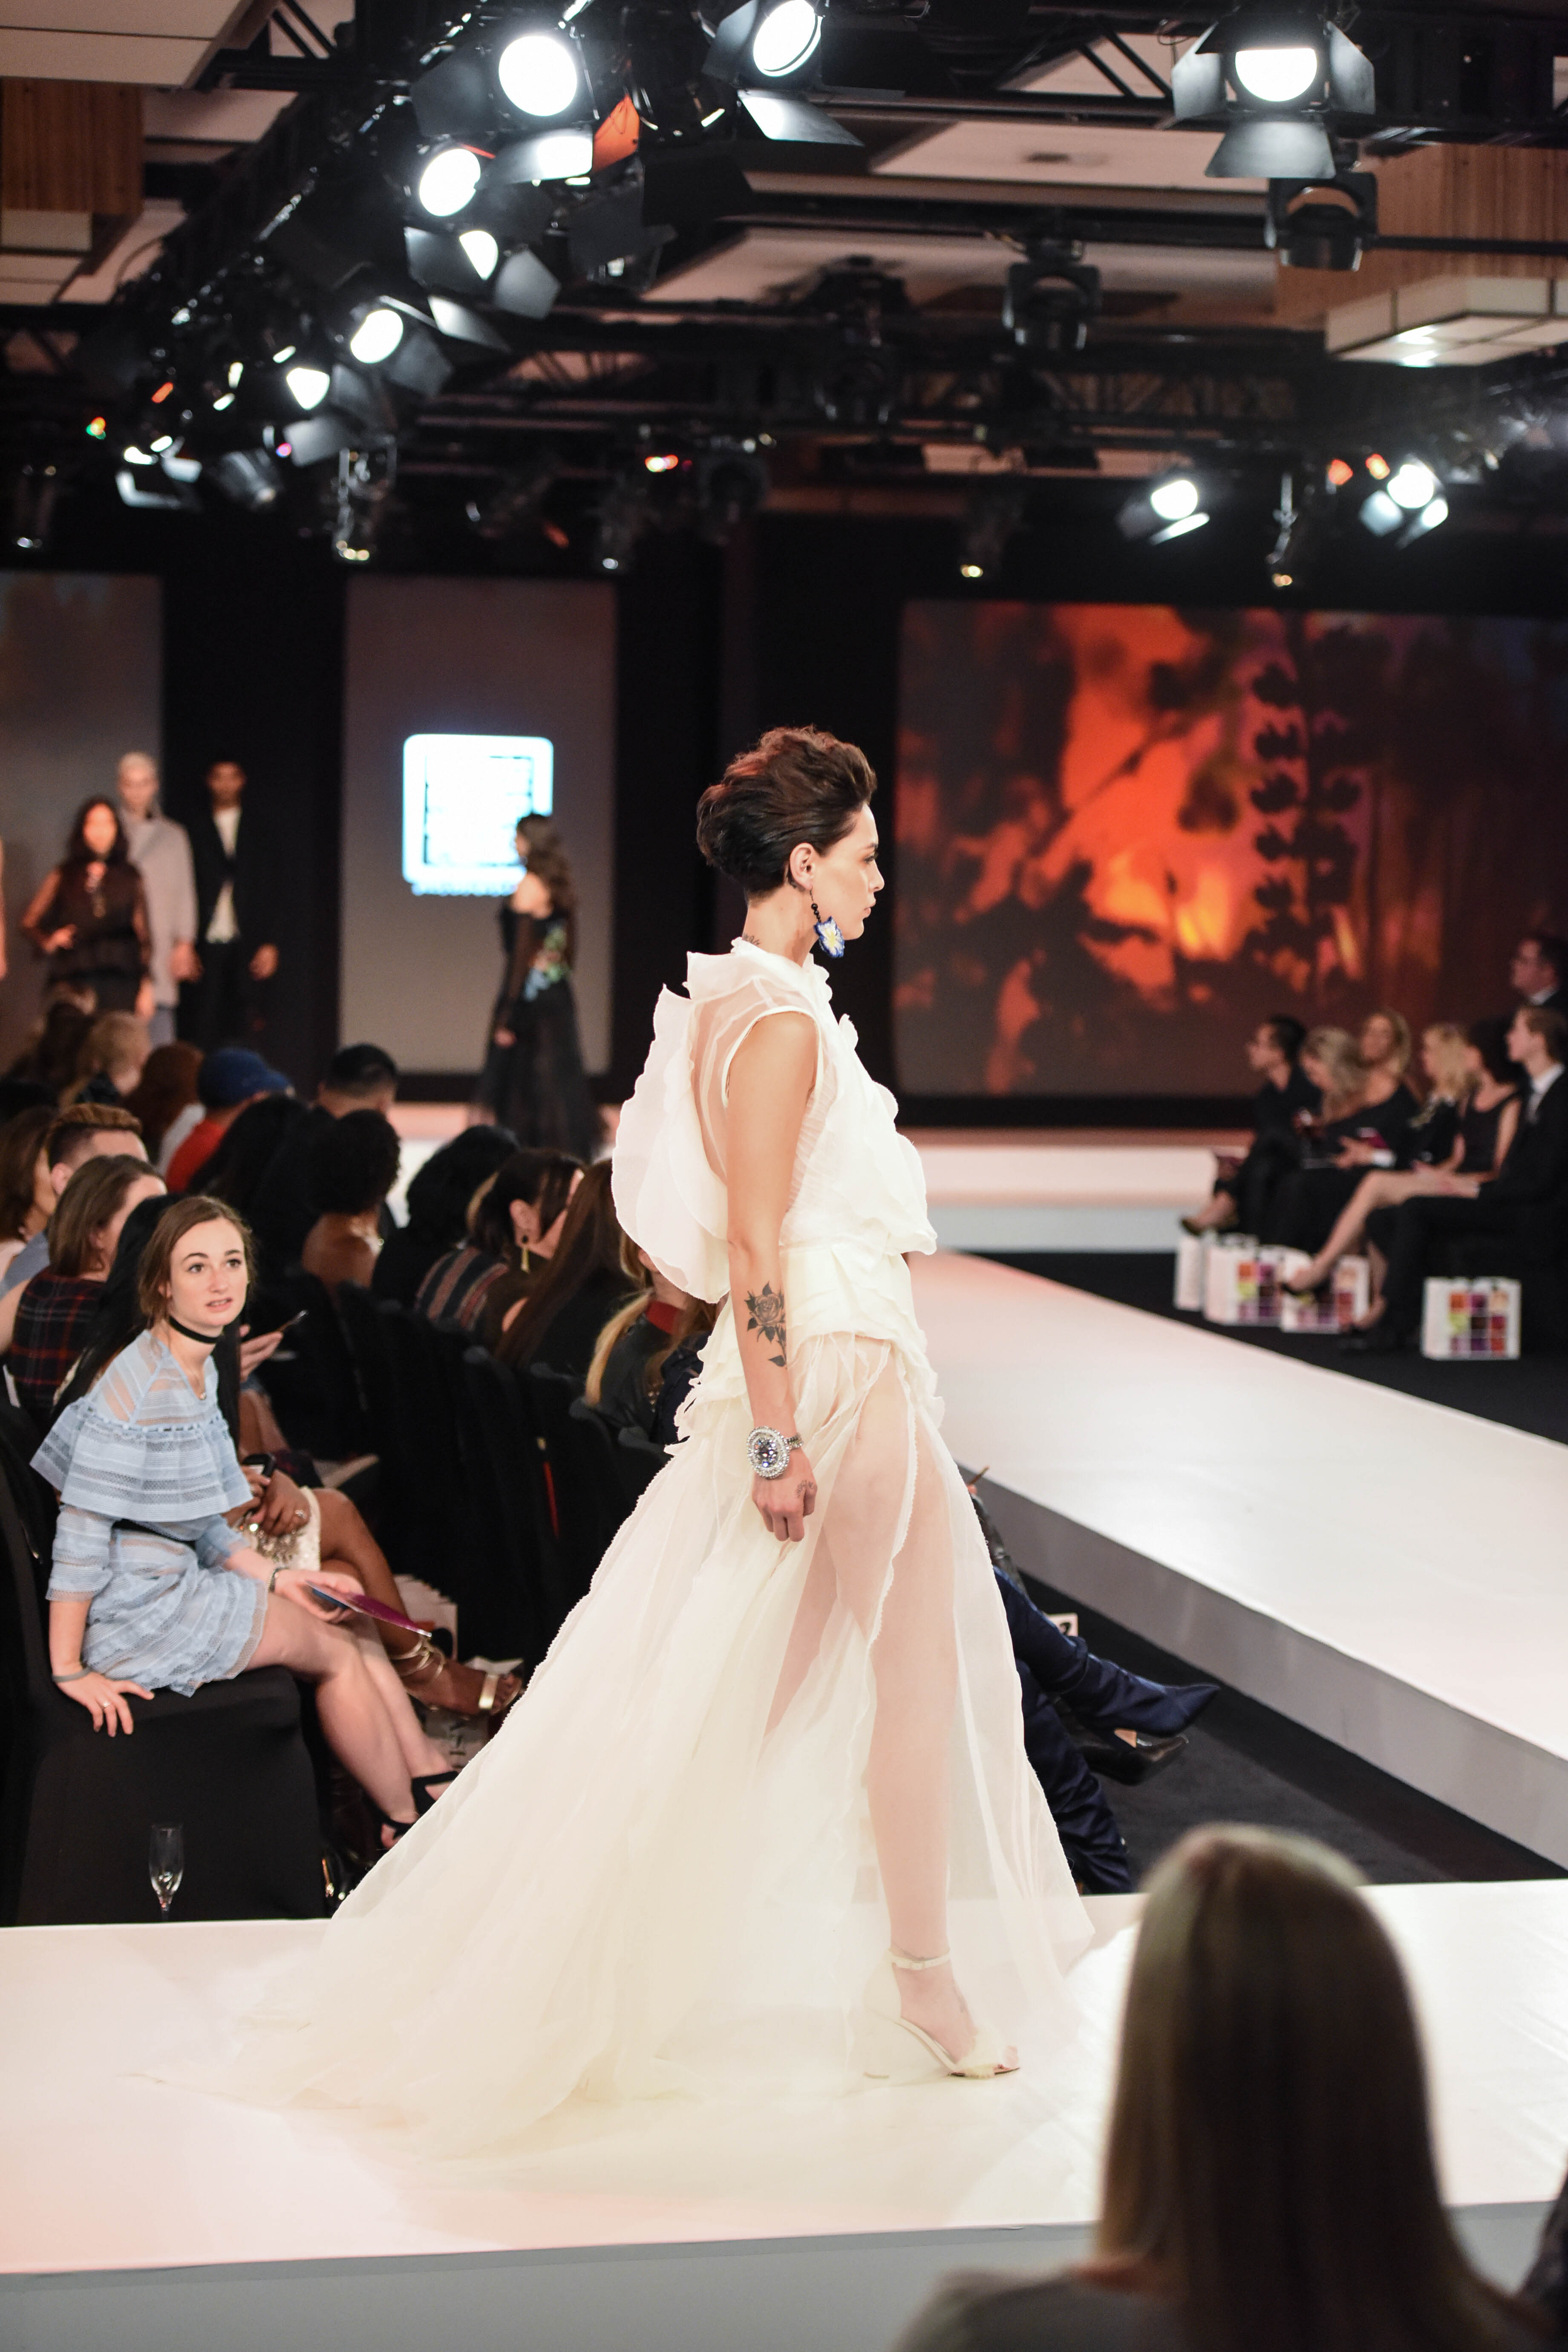 Fashion Week at The Bellevue Collection is the leader in the Northwest's runway shows. The best in fall fashion will come to life September 19-23, 2018.